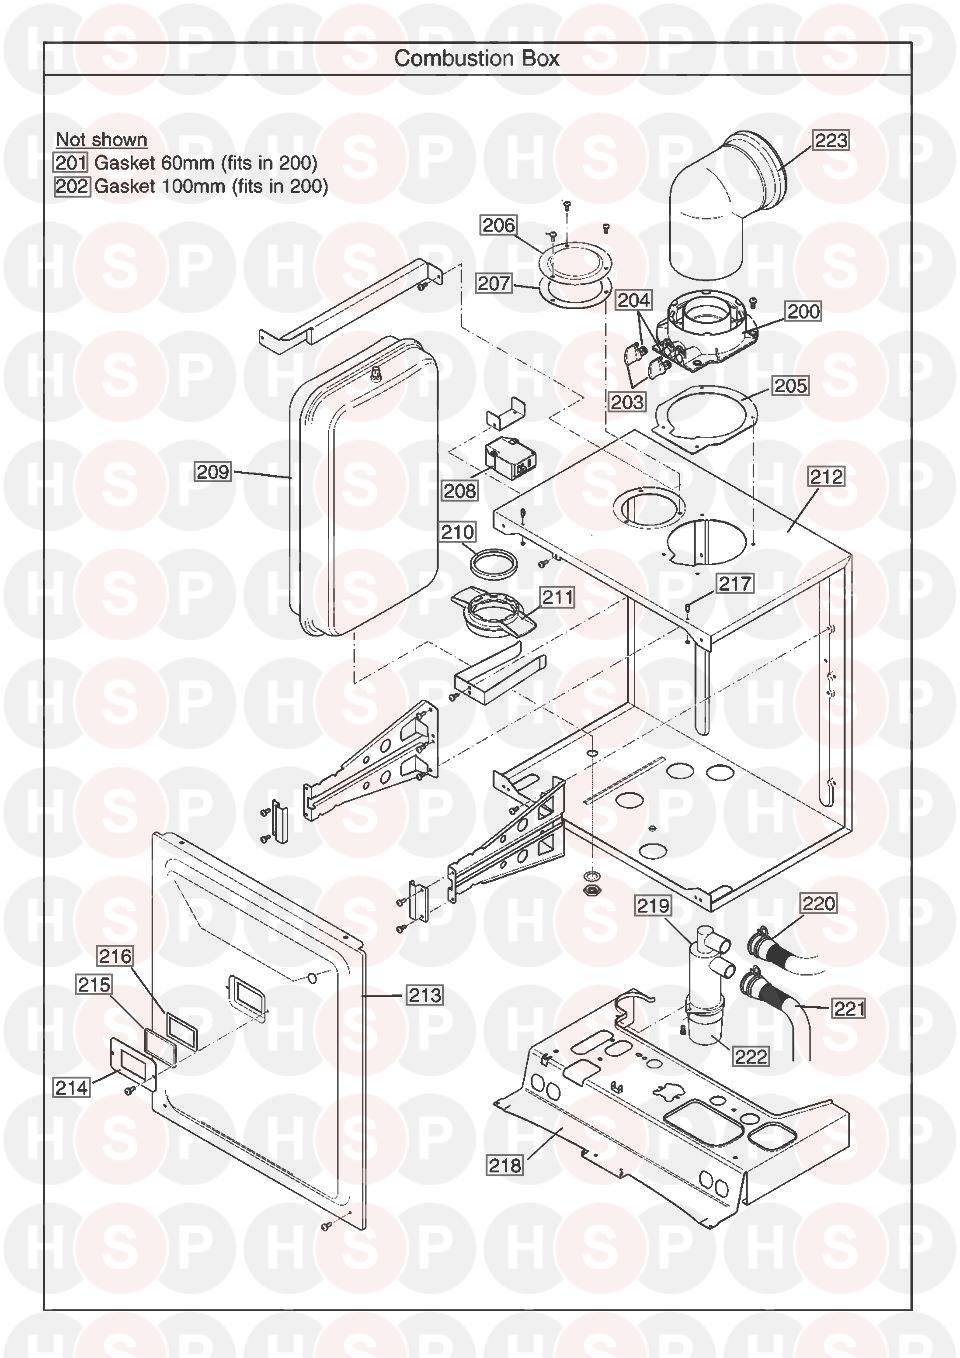 Combustion Box diagram for Baxi PLATINUM COMBI 28 HE A (AFTER SERIAL NO. BNC0932 ISSUE 7)